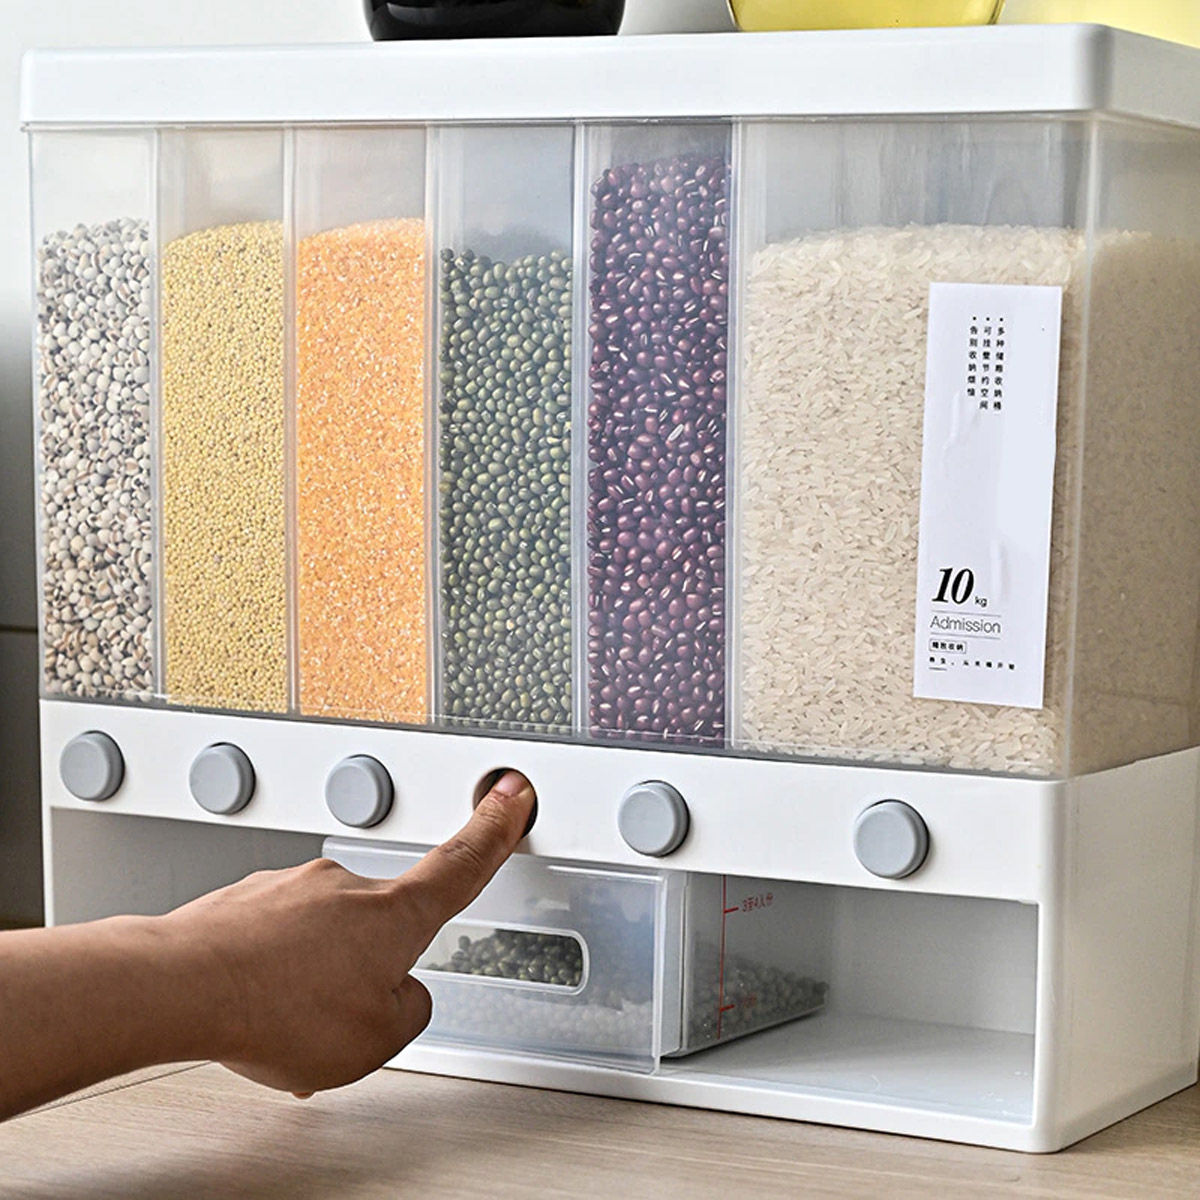 Push button wall mounted food dispenser